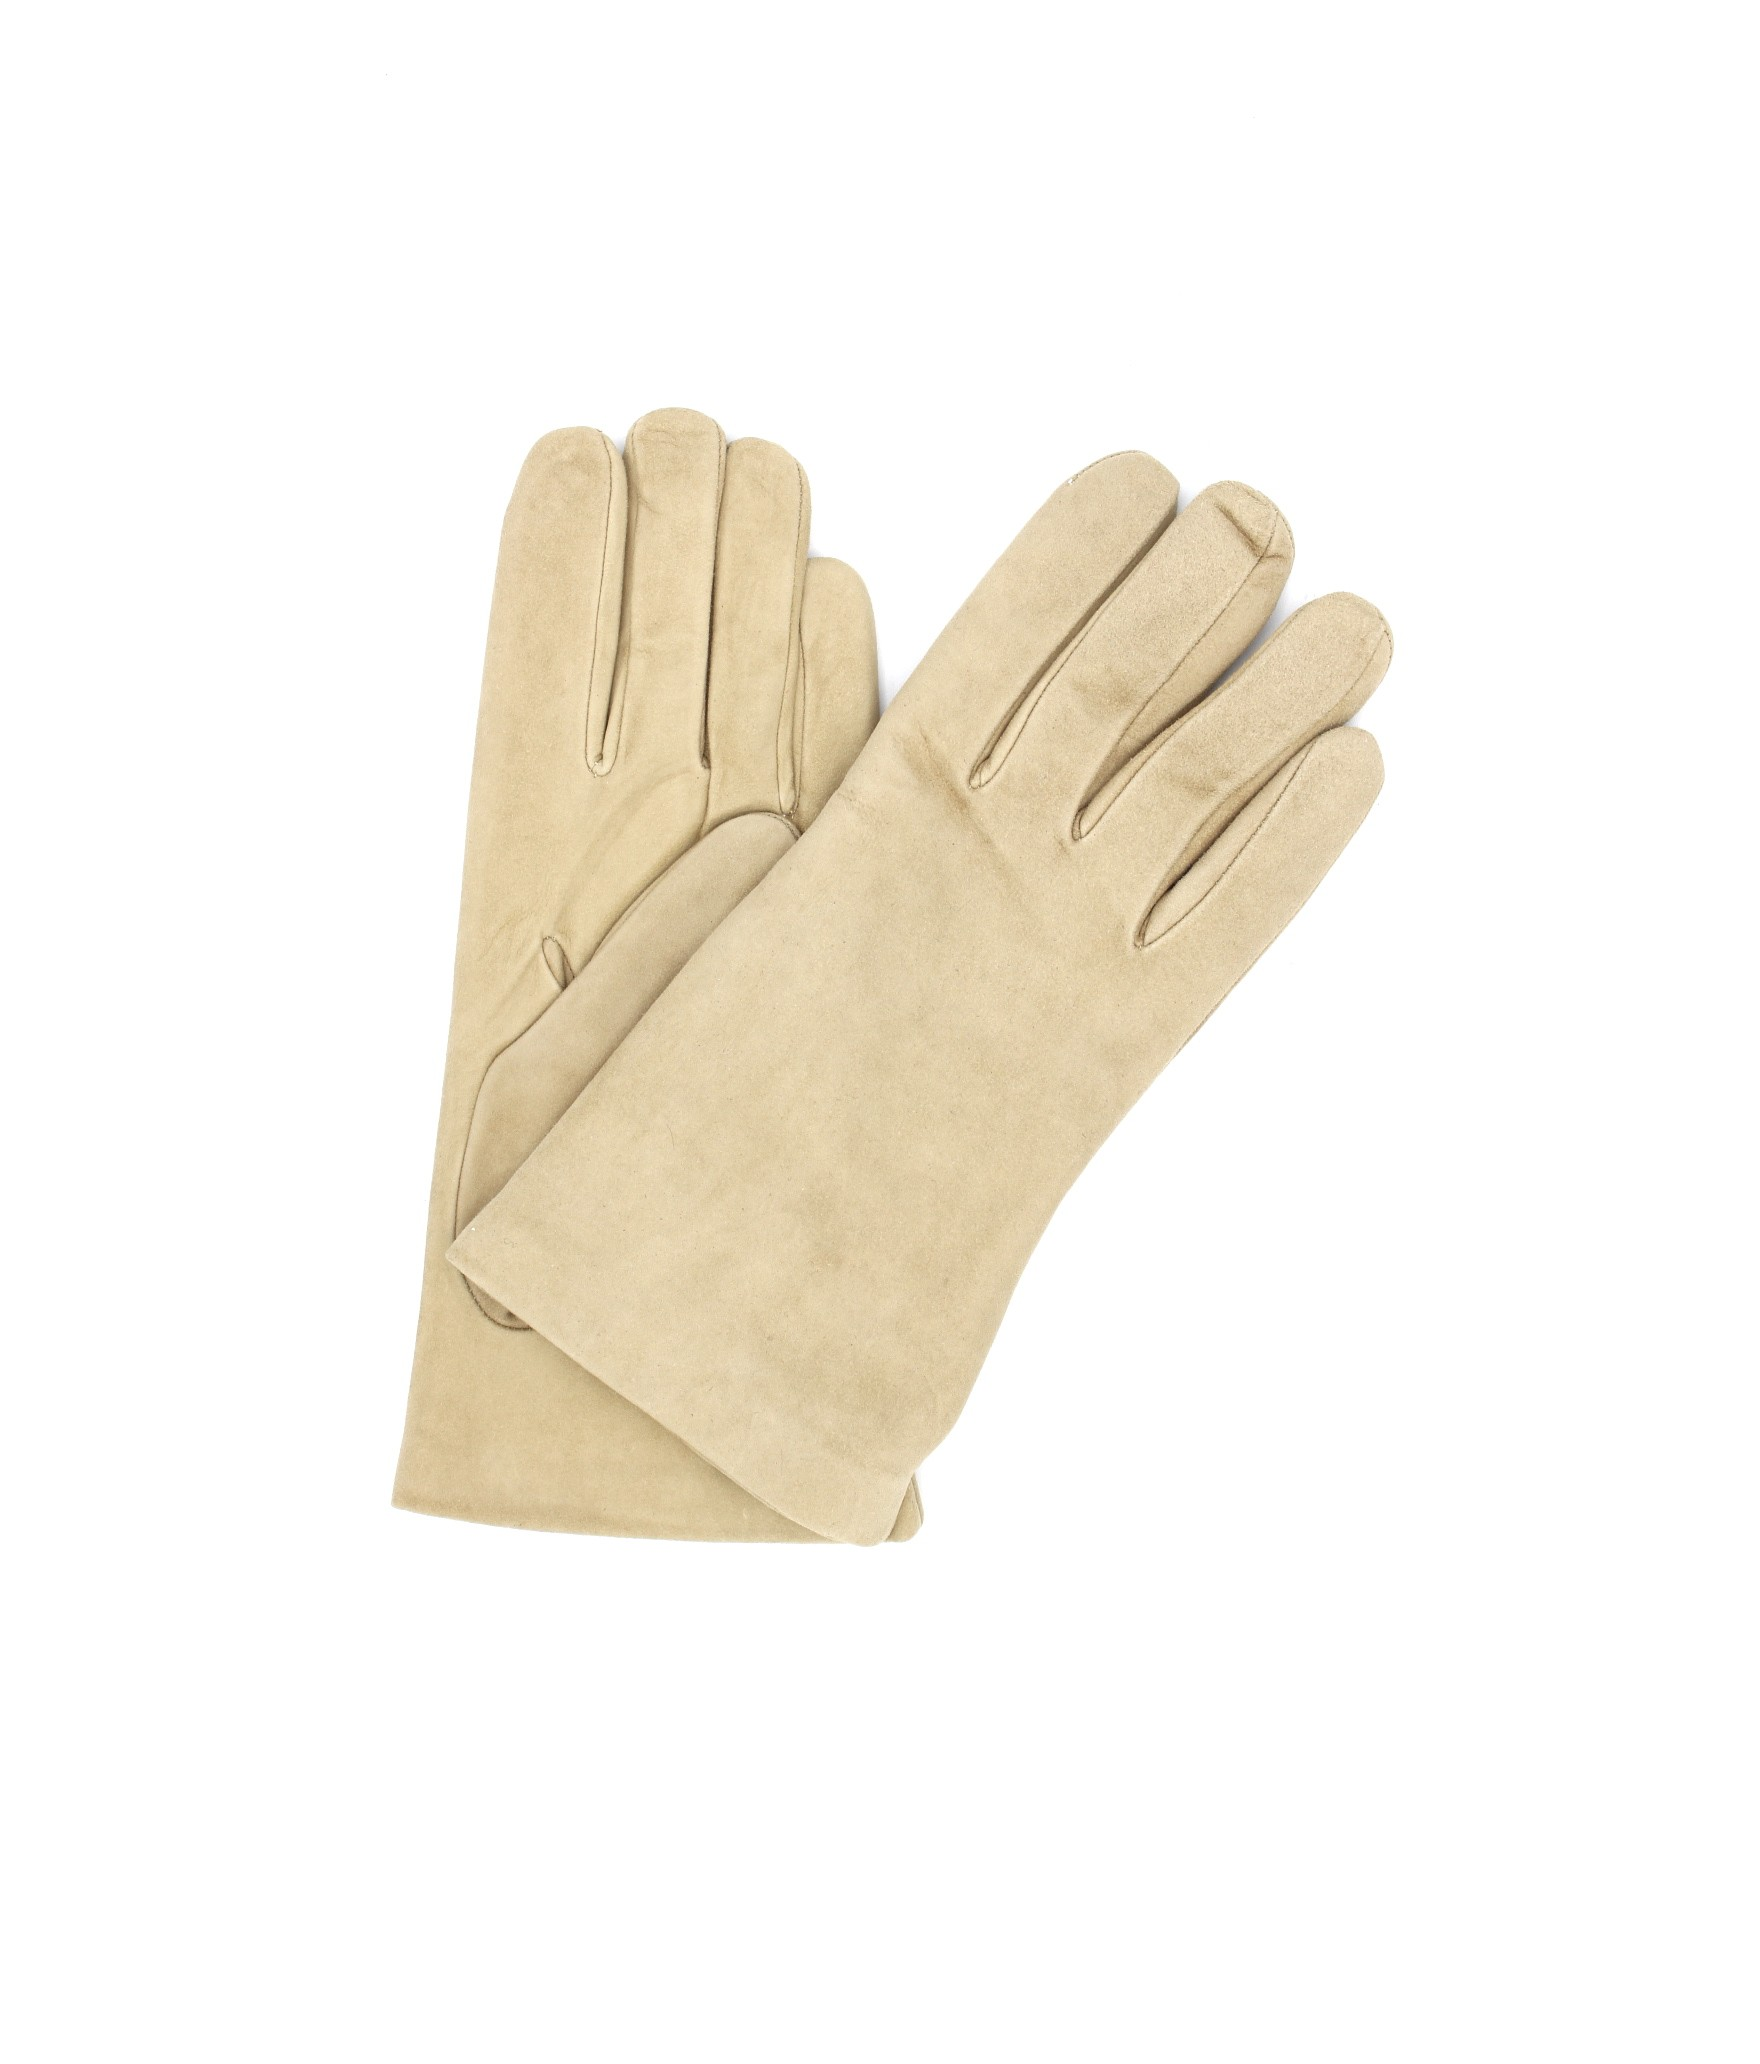 Suede Nappa leather gloves lined Cashmere Light Beige Sermoneta